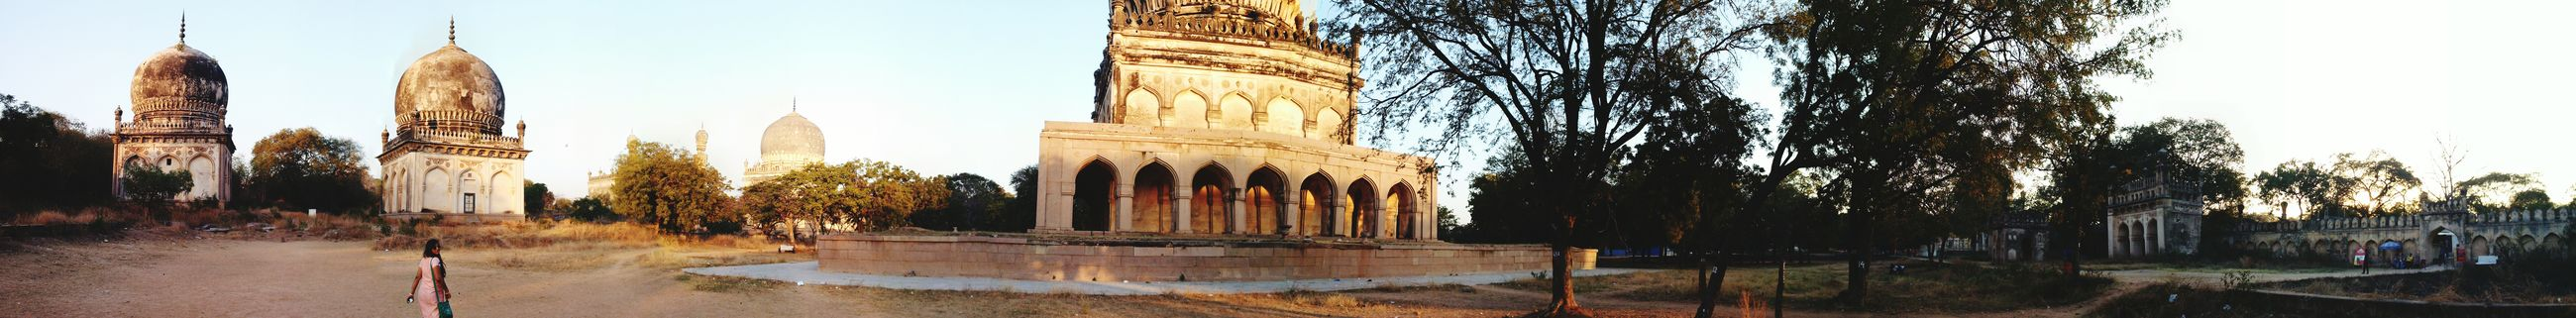 Panorama 7tombs Architecture History Hyderabad